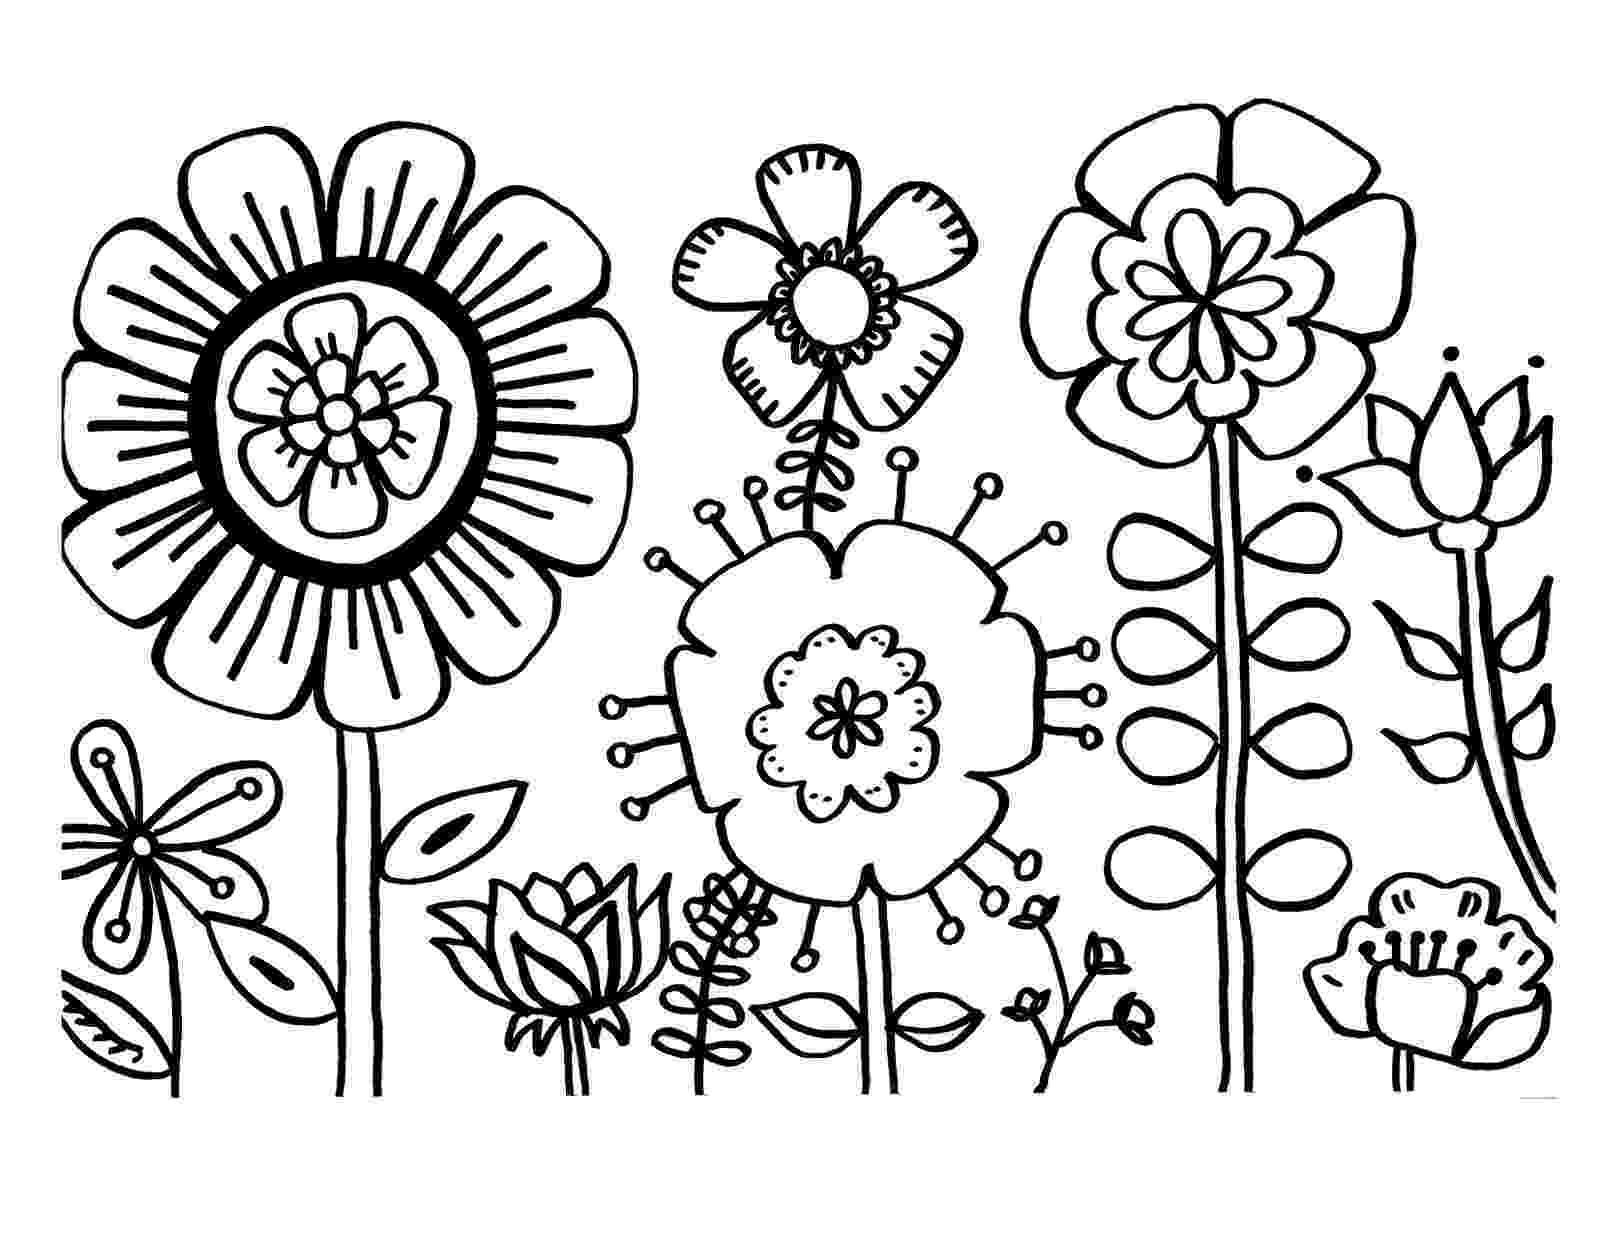 color page flower free printable flower coloring pages for kids best color flower page 1 1